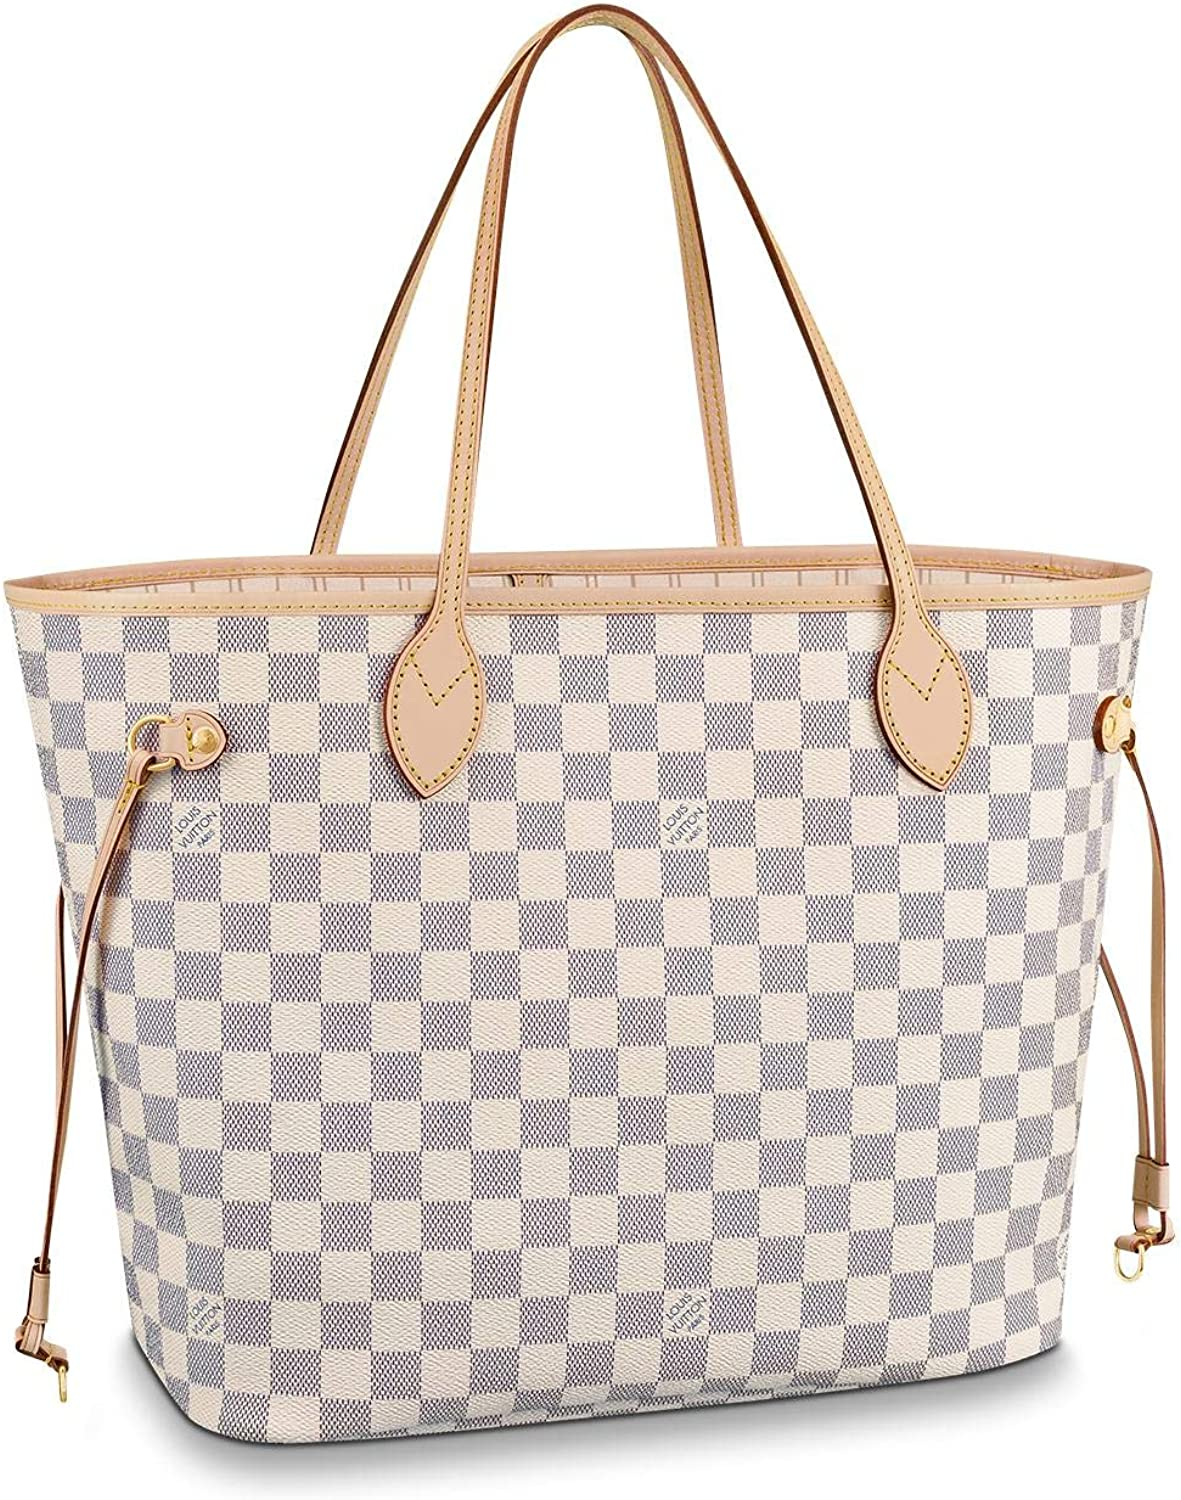 Louis Vuitton Neverfull MM Damier Azur Bags Handbags Purse